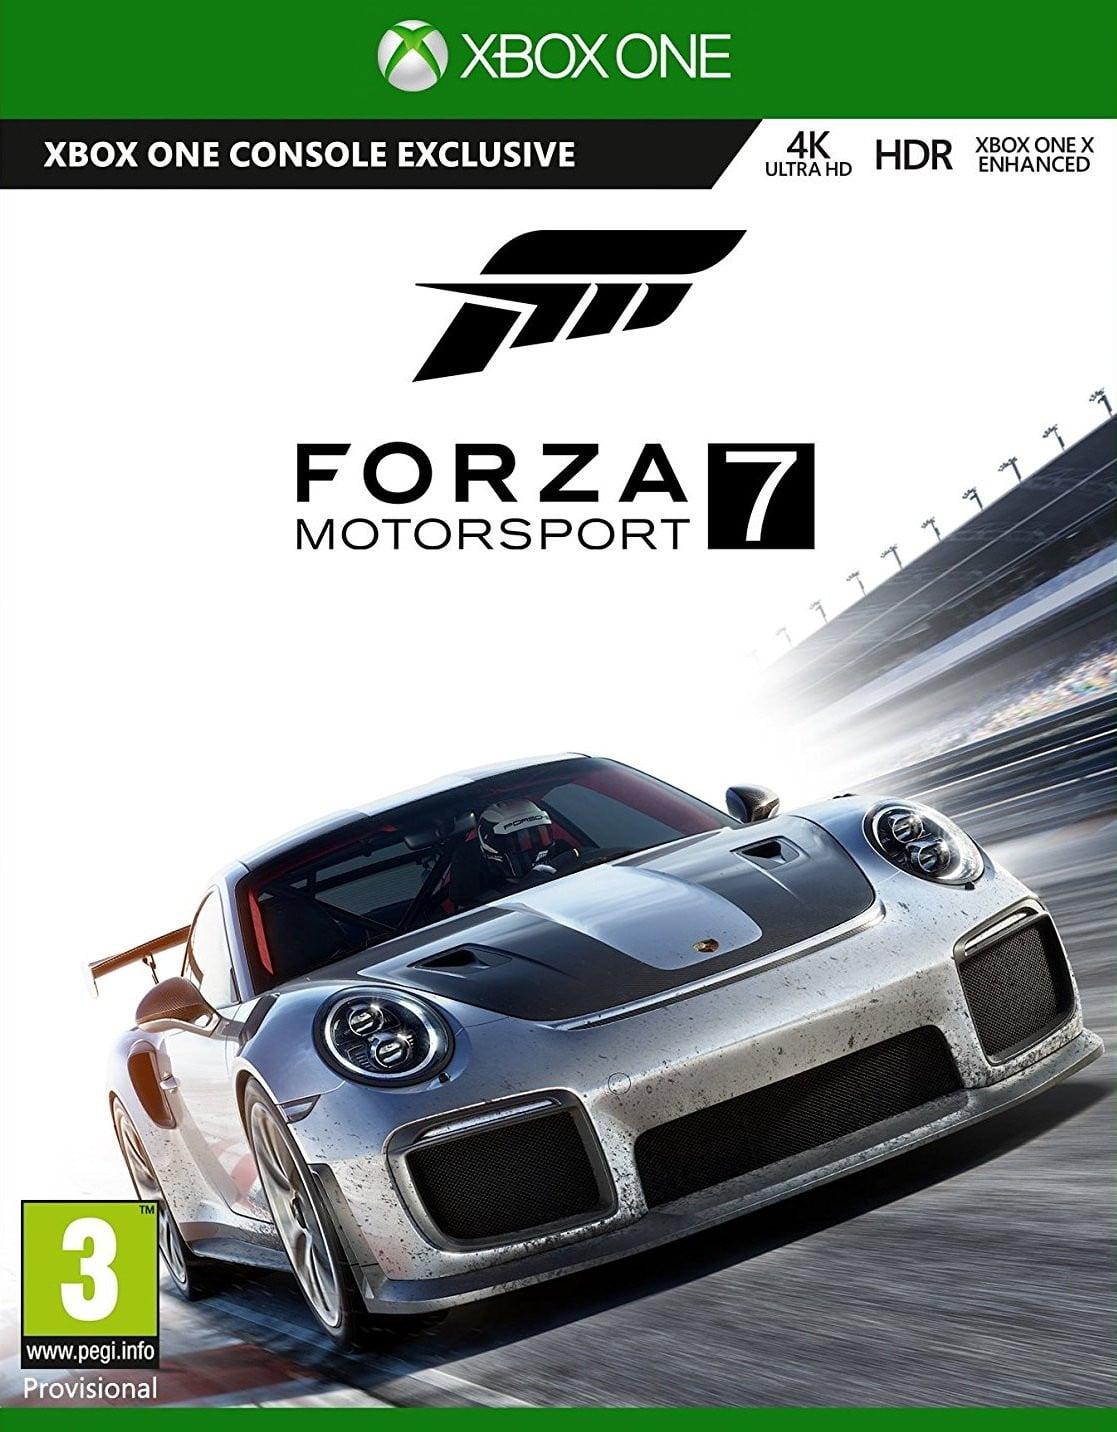 Buy Forza Motorsport 7 (XBOX ONE) XBOX ONE in Egypt - Shamy Stores